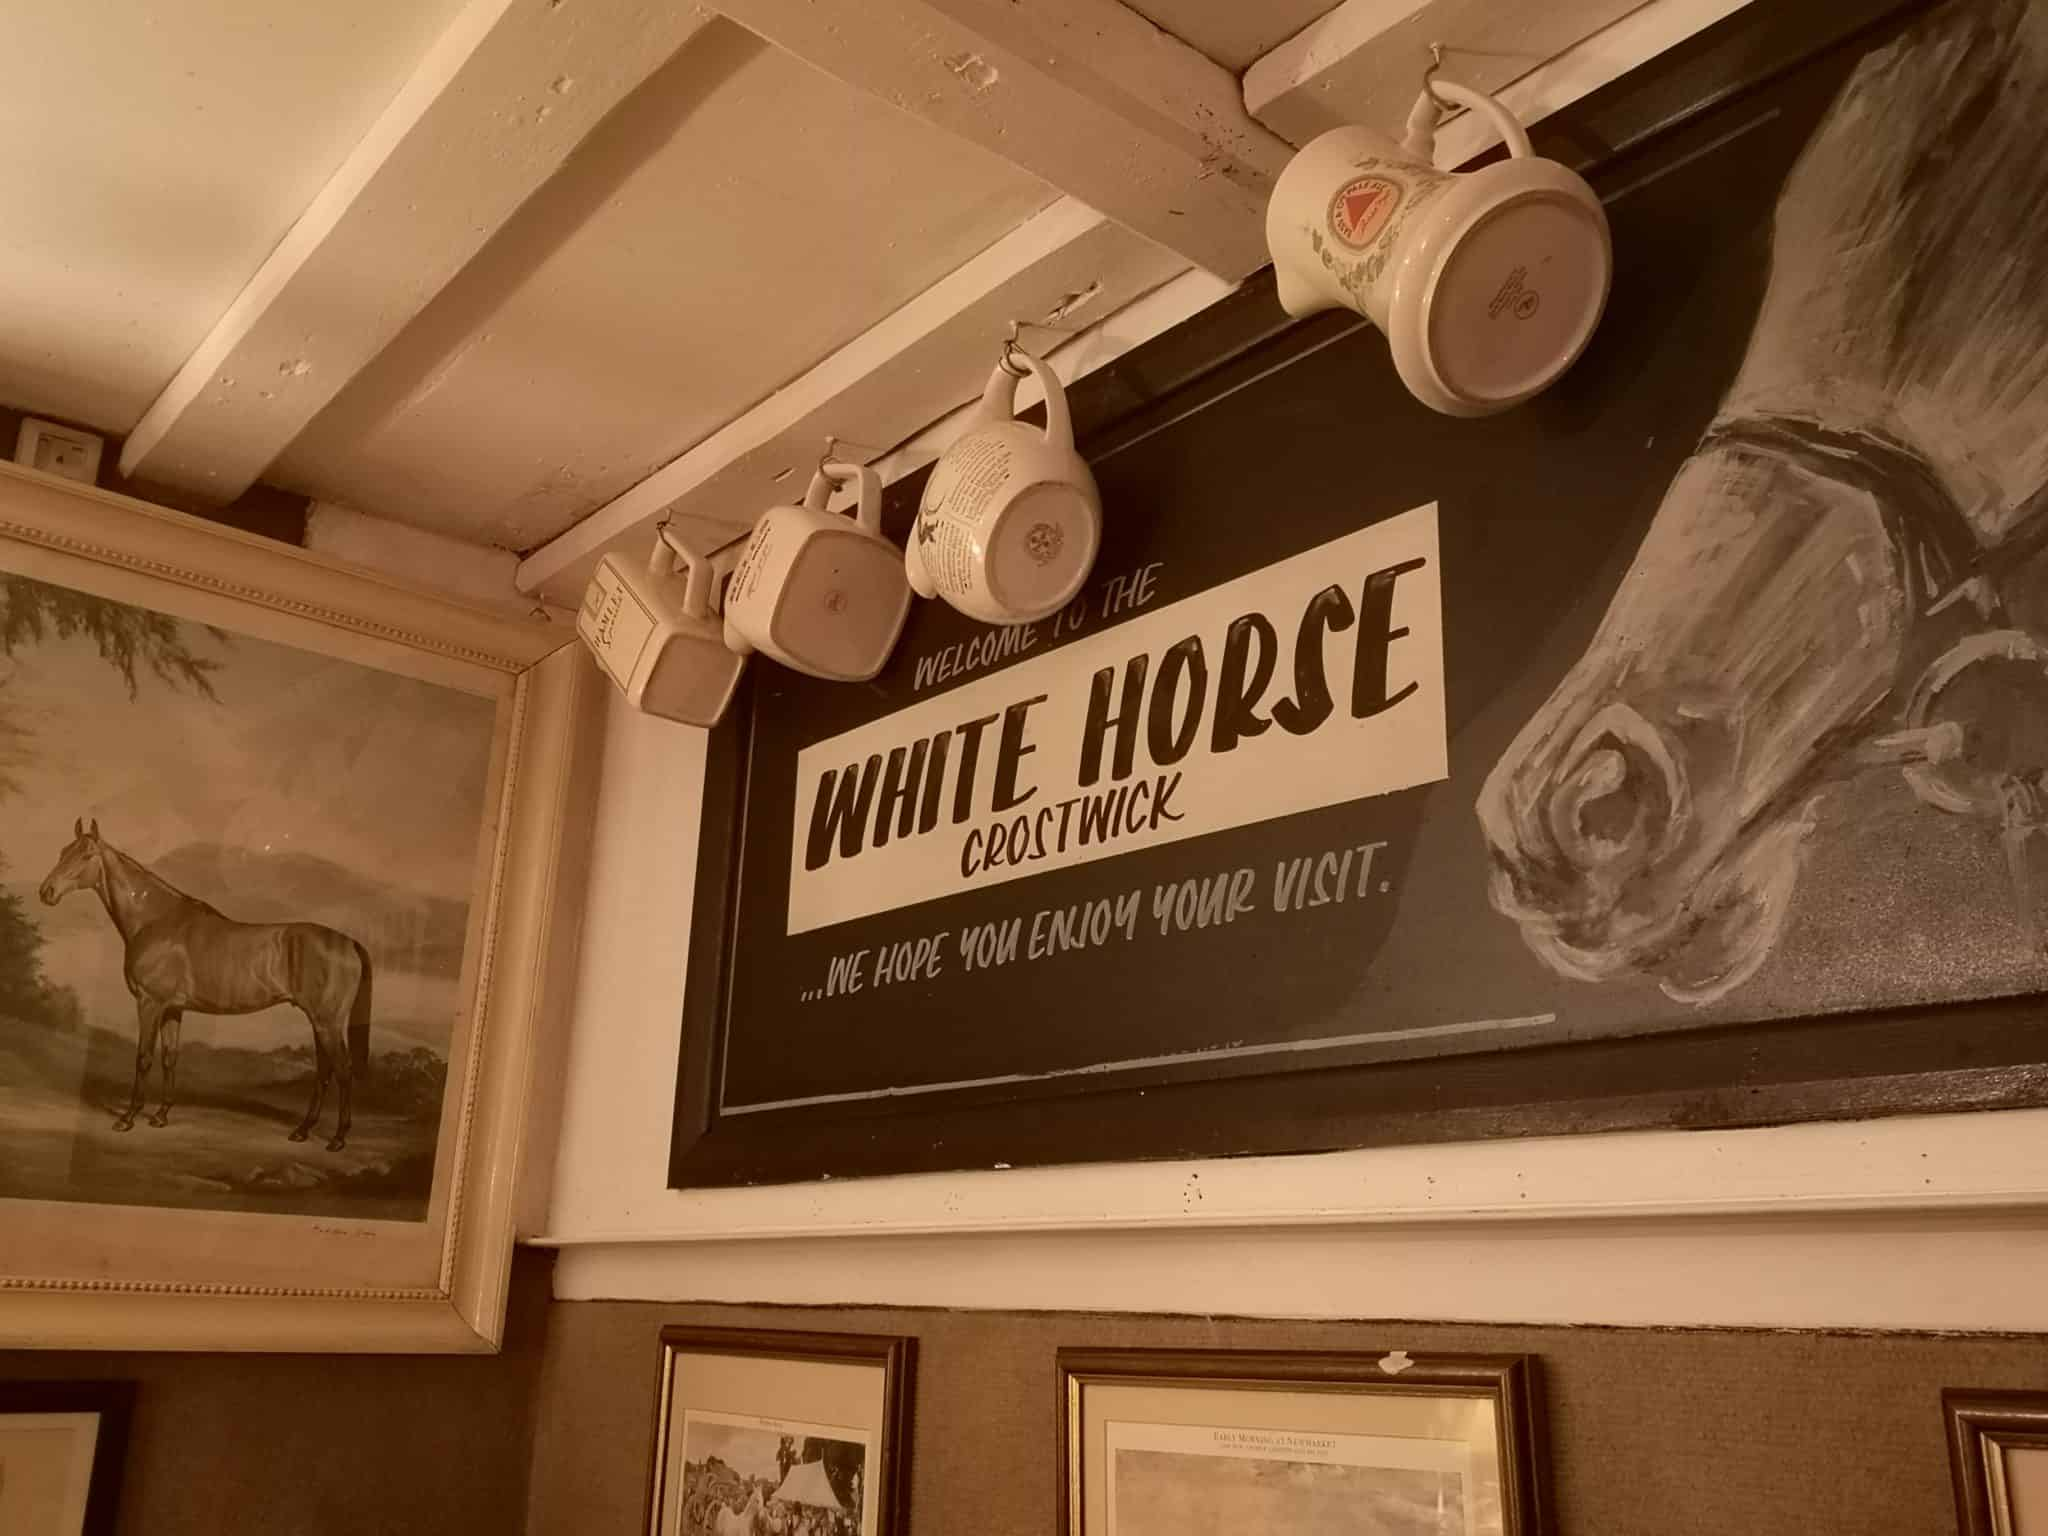 The White Horse, Crostwick